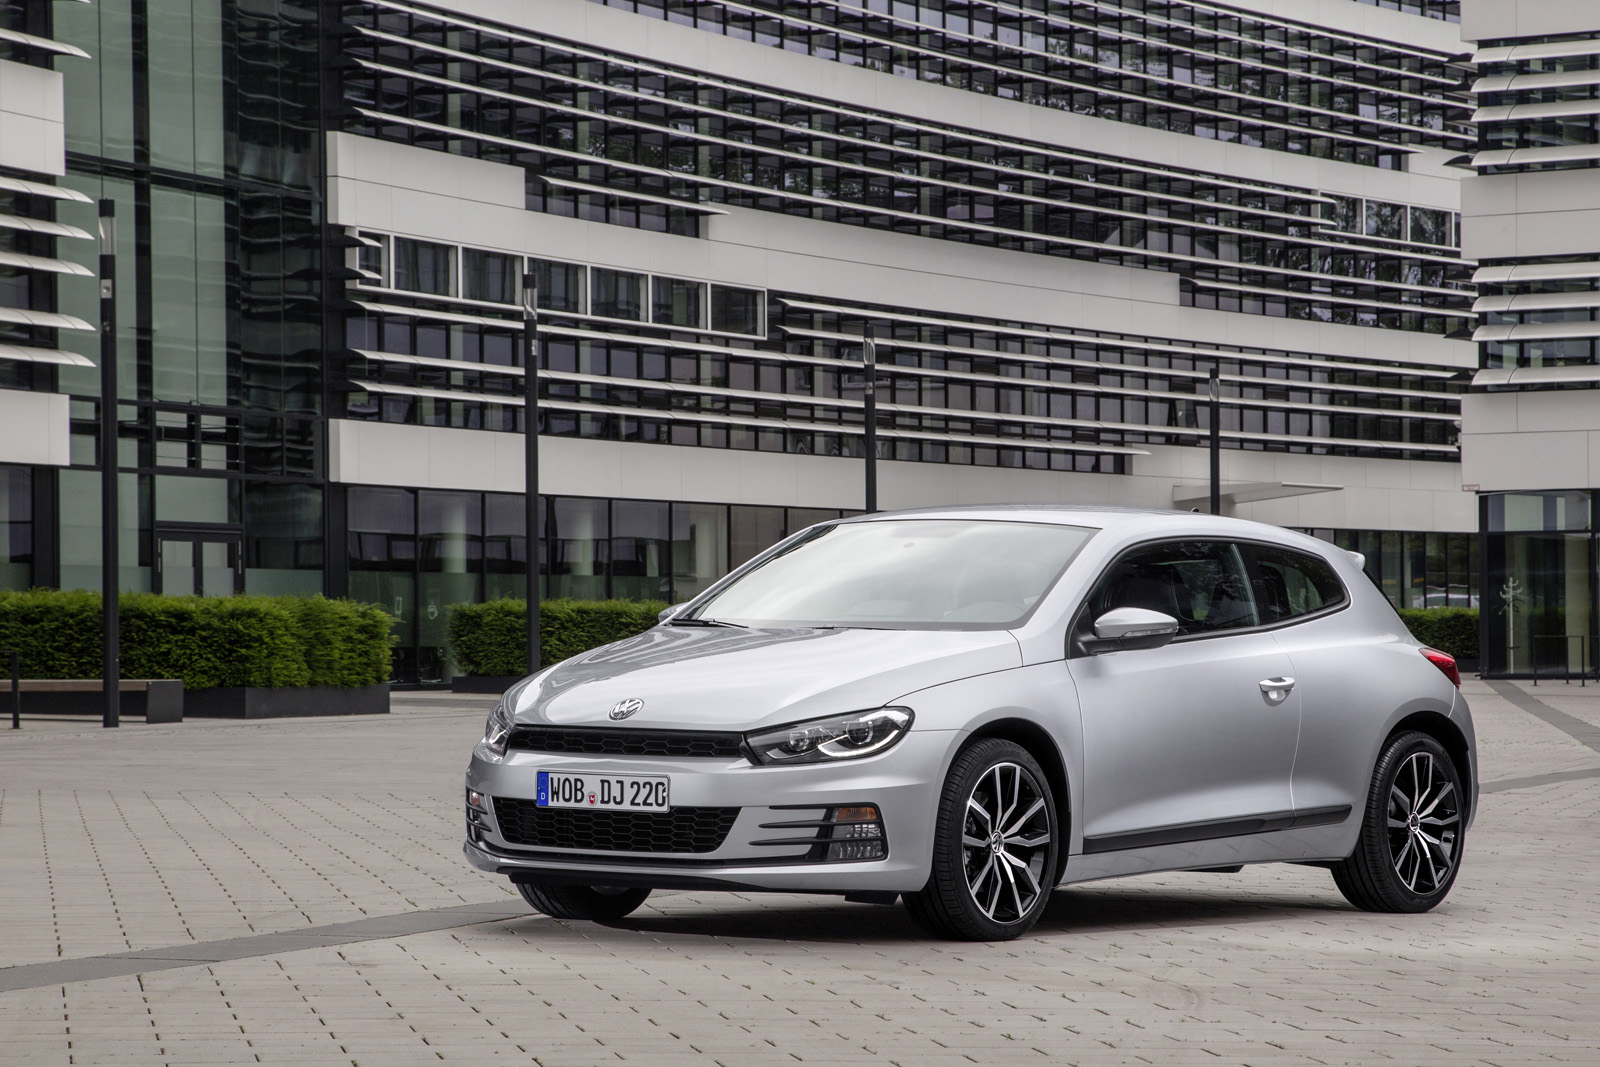 2016 vw scirocco 2 0 tdi 184 hp acceleration test vs 1 4. Black Bedroom Furniture Sets. Home Design Ideas